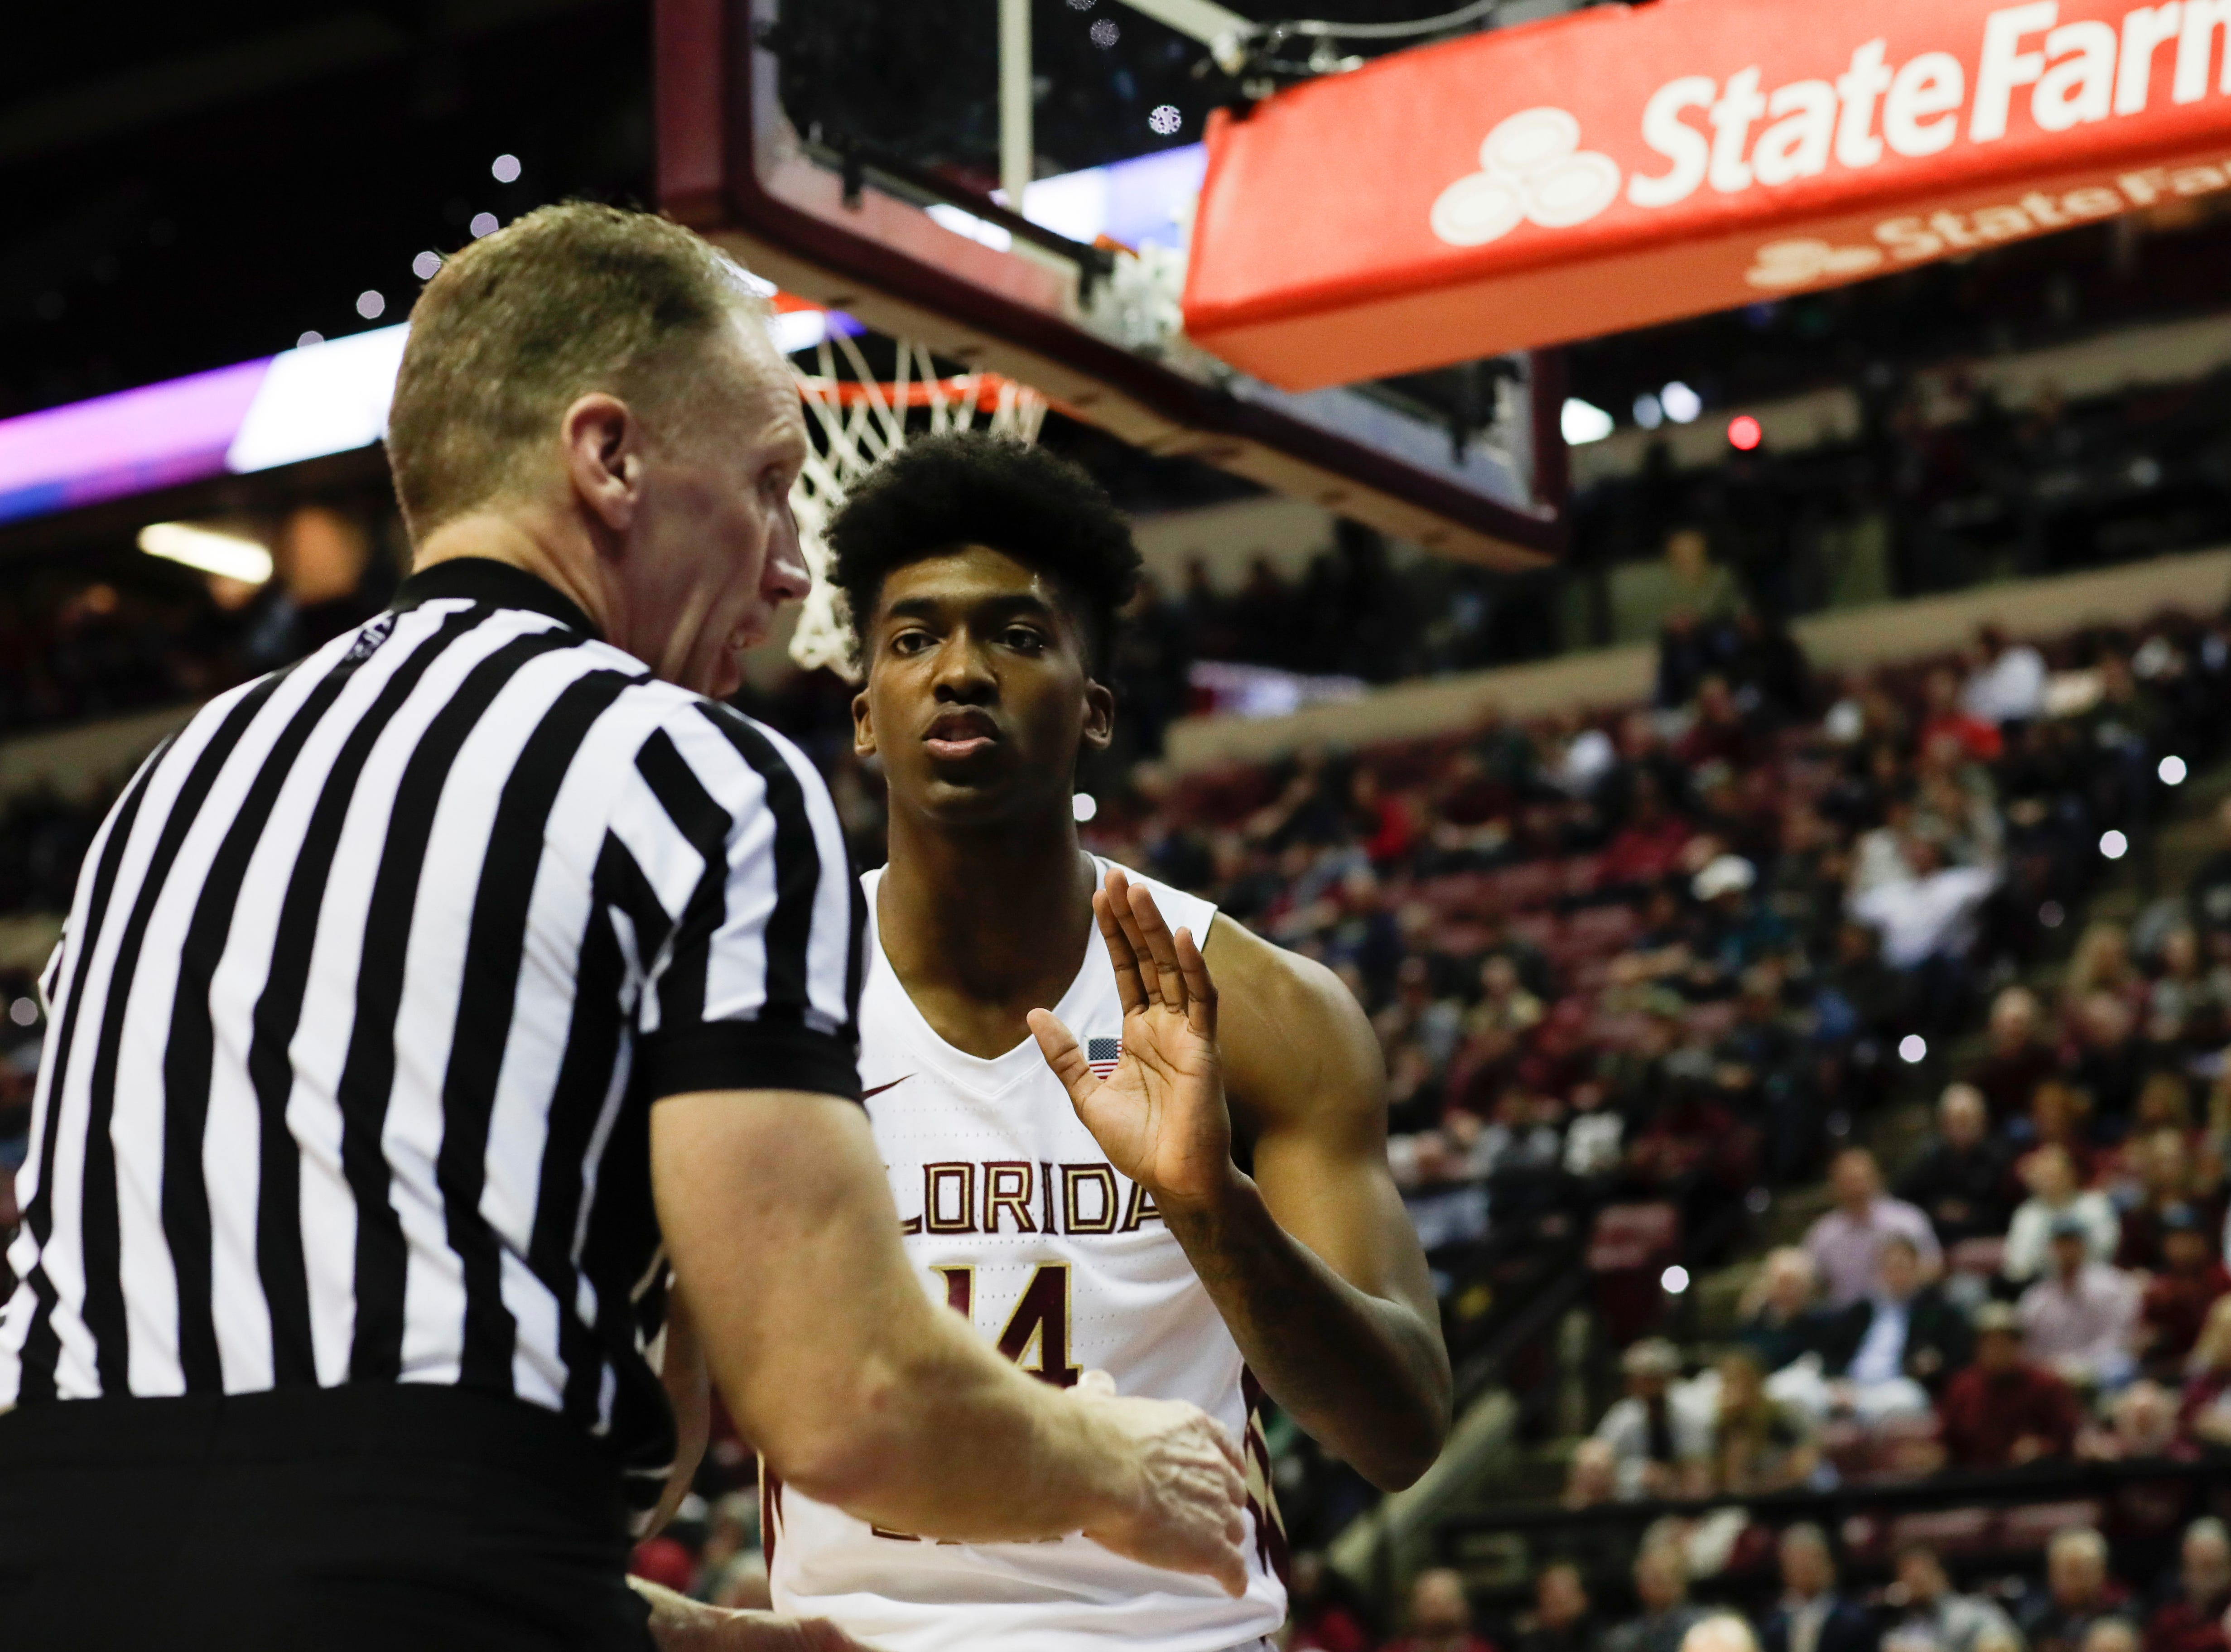 Florida State Seminoles guard Terance Mann (14) pleads with a referee after a call against his team during a game between FSU and University of Miami Wednesday, Jan. 9, 2019.